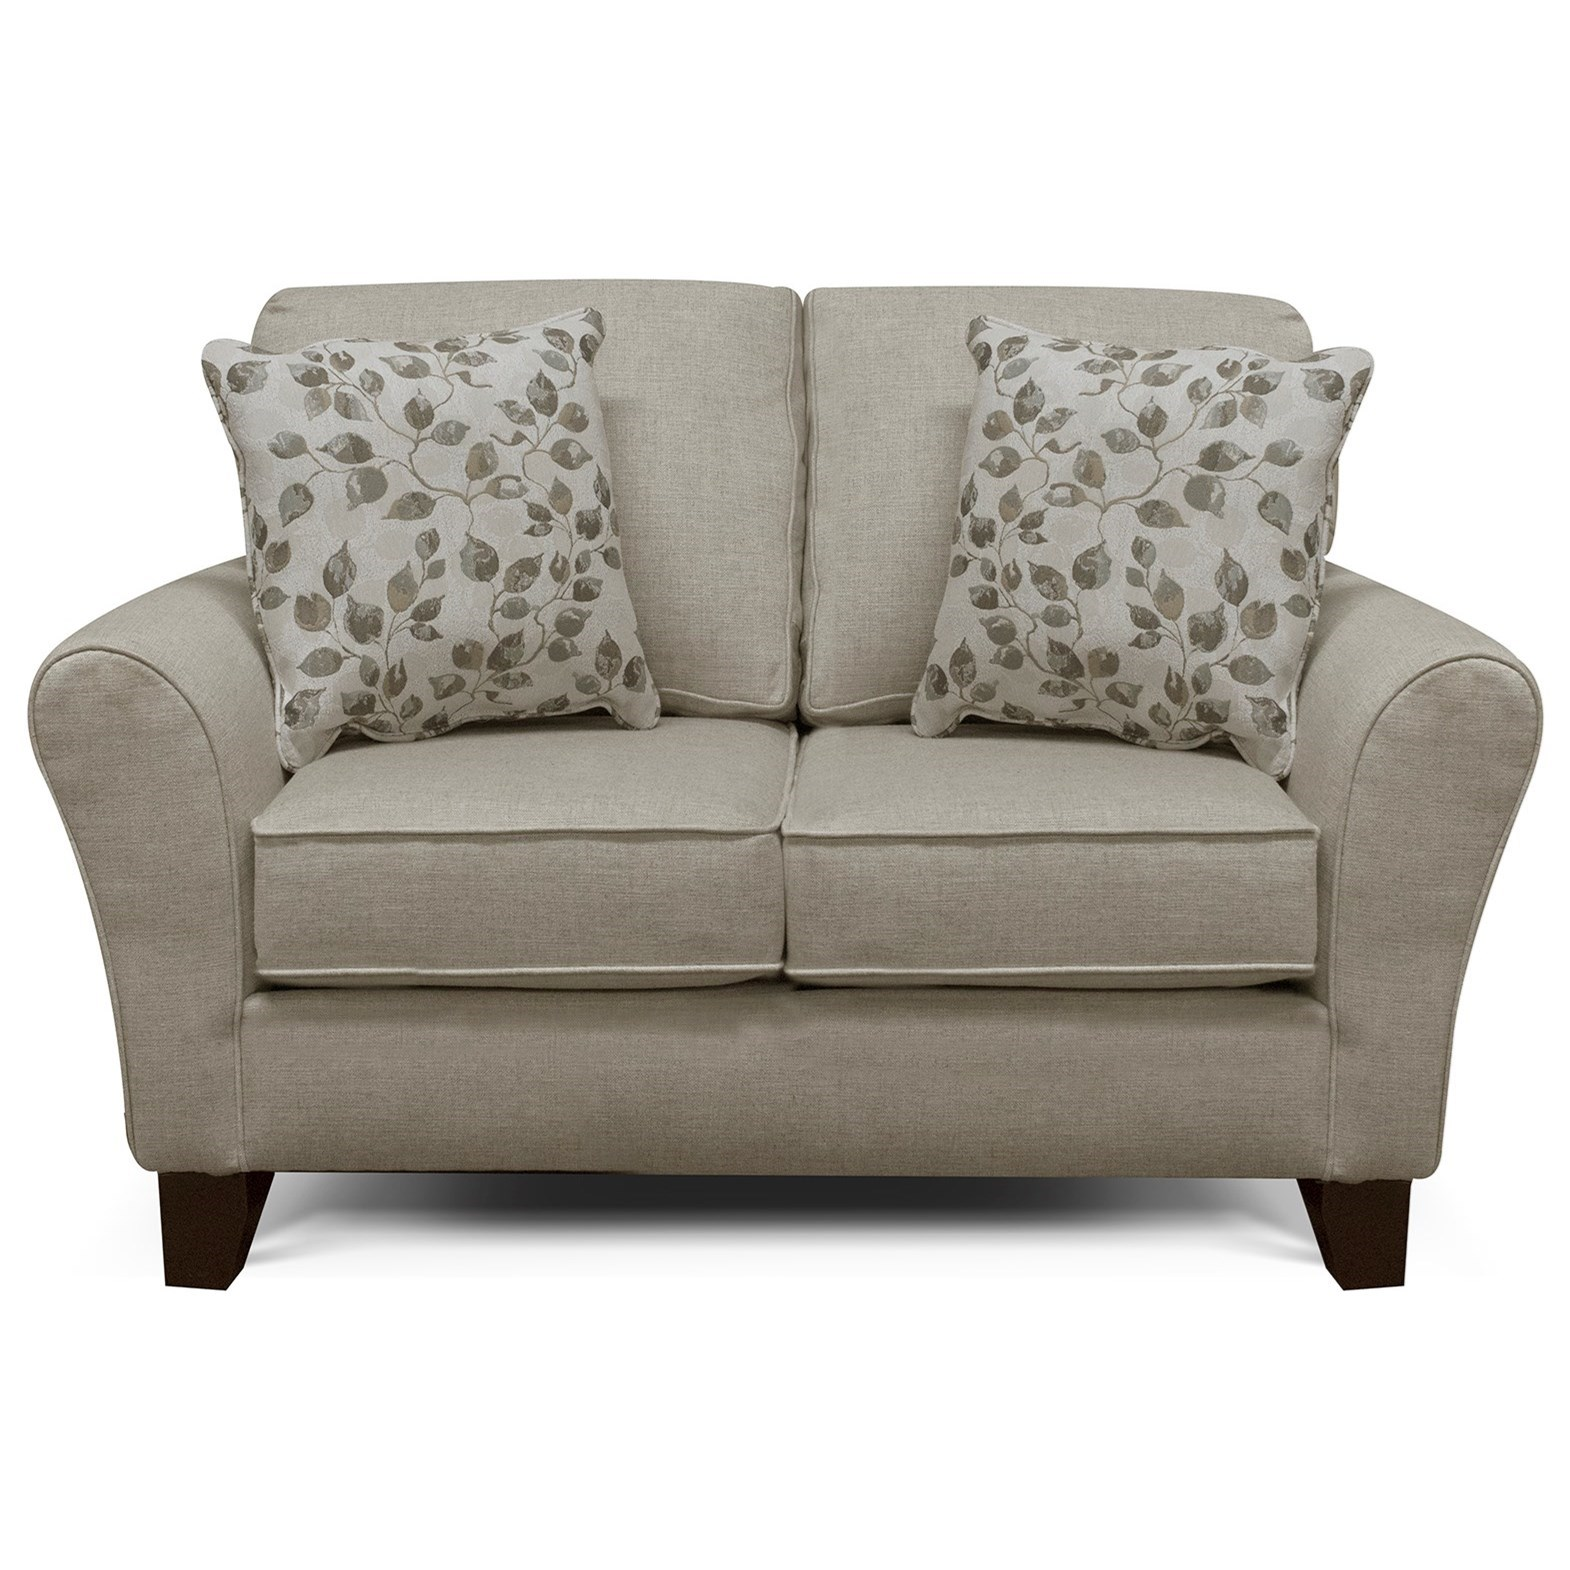 Paxton Loveseat by England at Crowley Furniture & Mattress